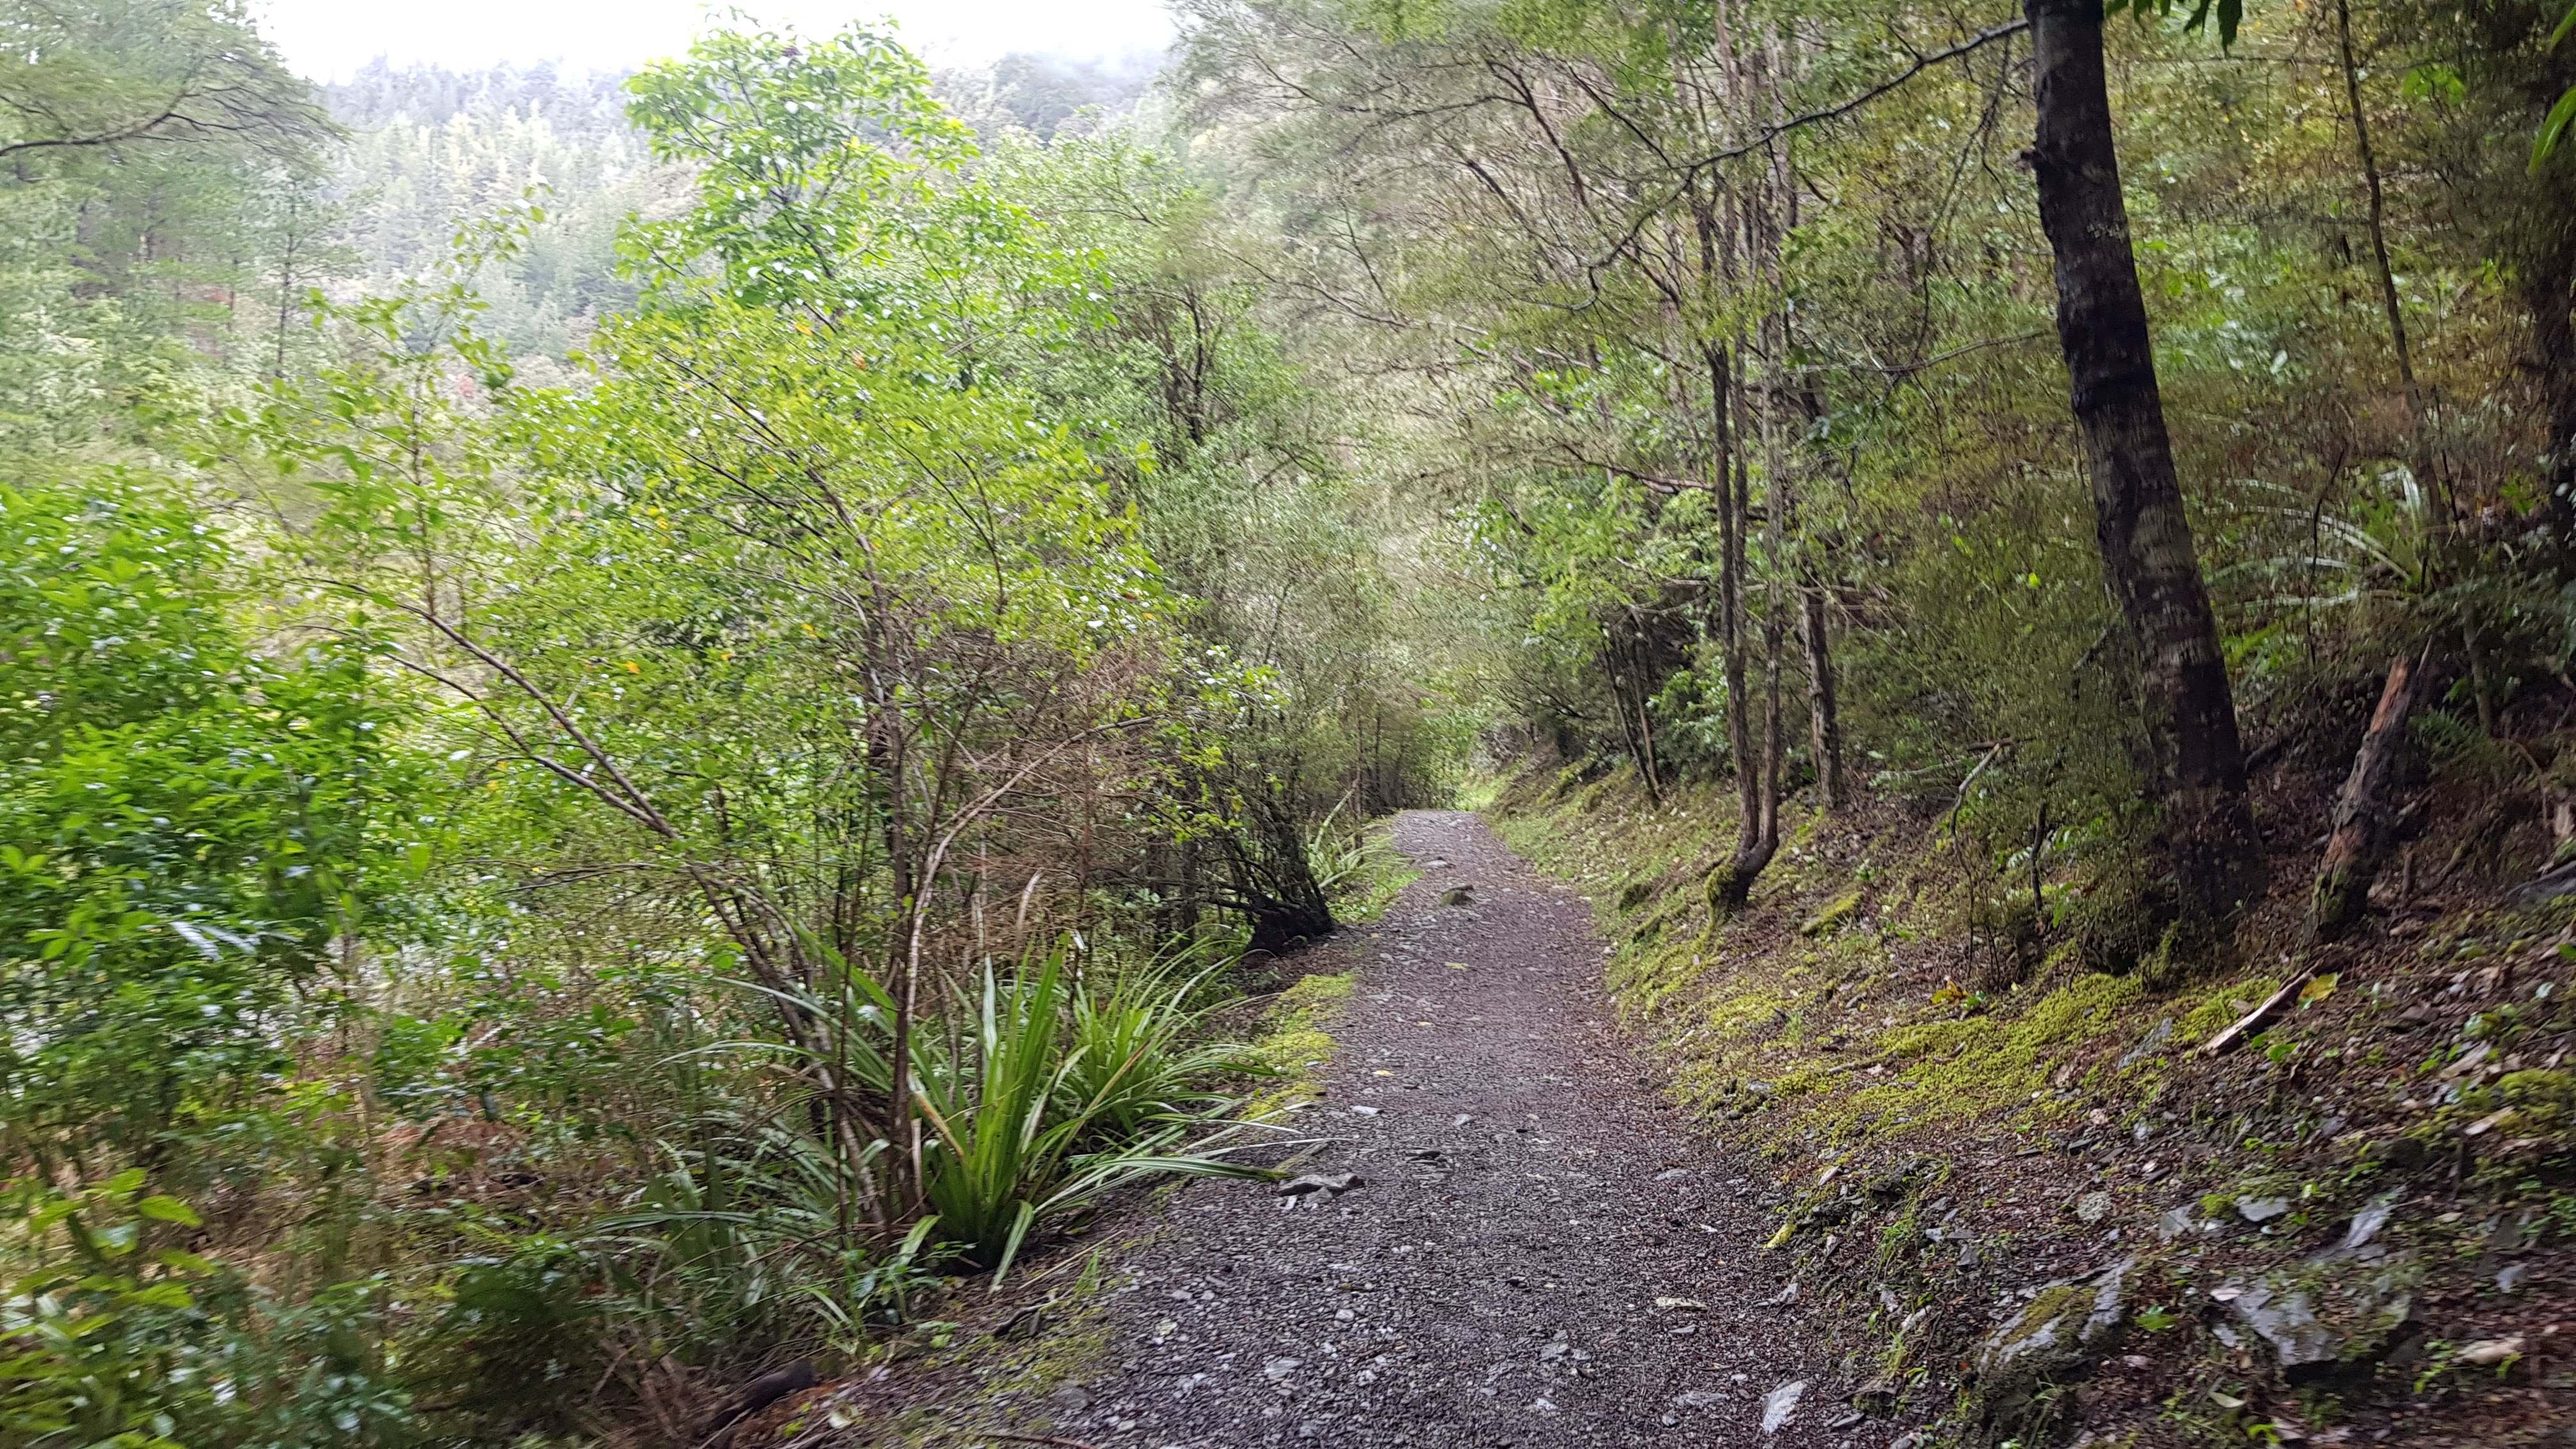 Through some nice forest sections on the Hacket Track